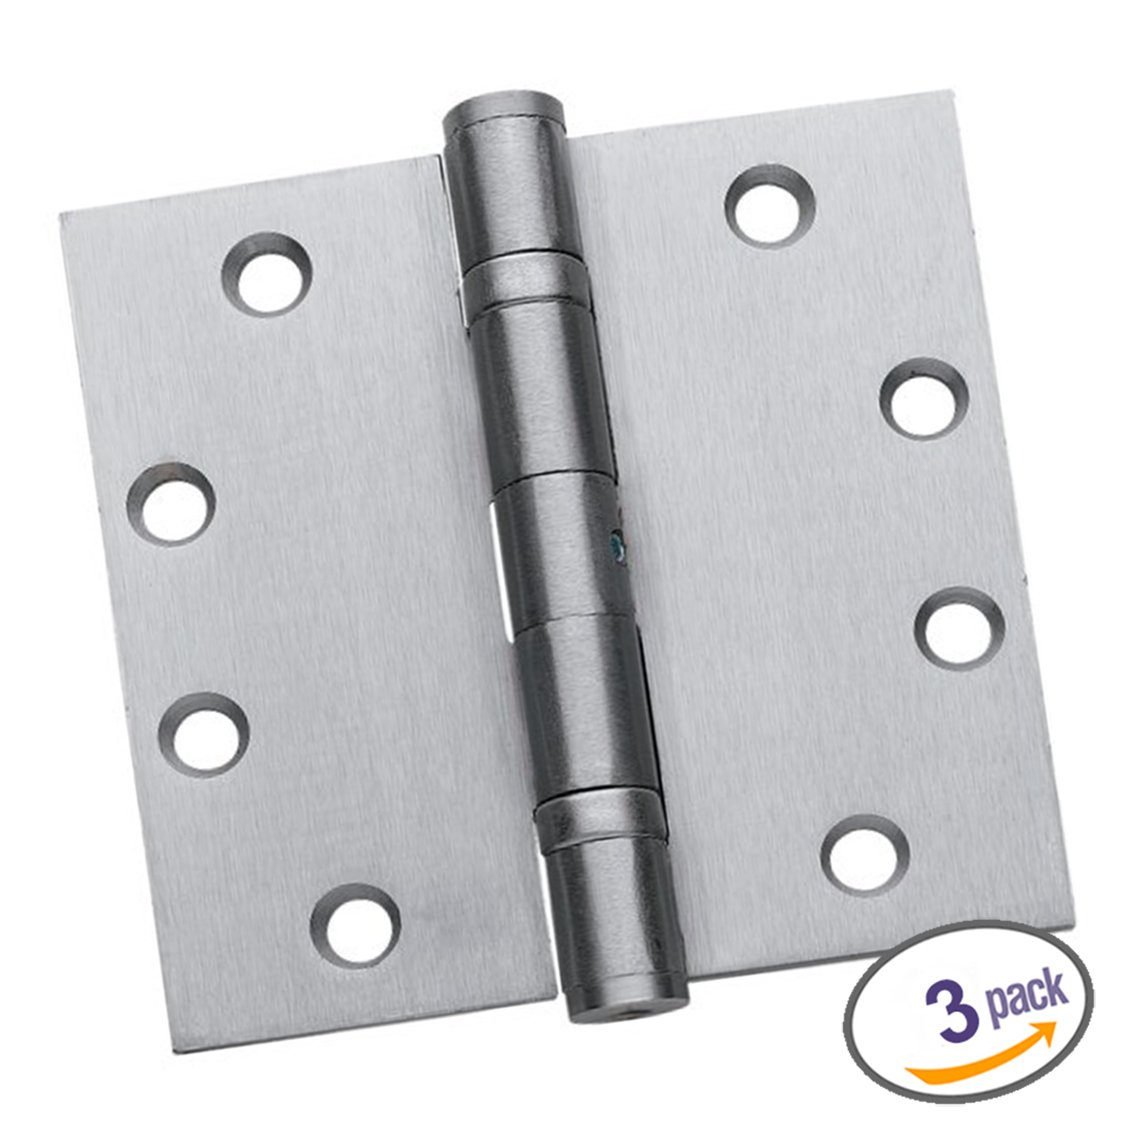 Exceptionnel Dynasty Hardware Commercial Grade Ball Bearing Door Hinge 4 1/2 X 4 1/2  Full Mortise Brushed Chrome, Non Removable Pin    3  PACK     Amazon.com